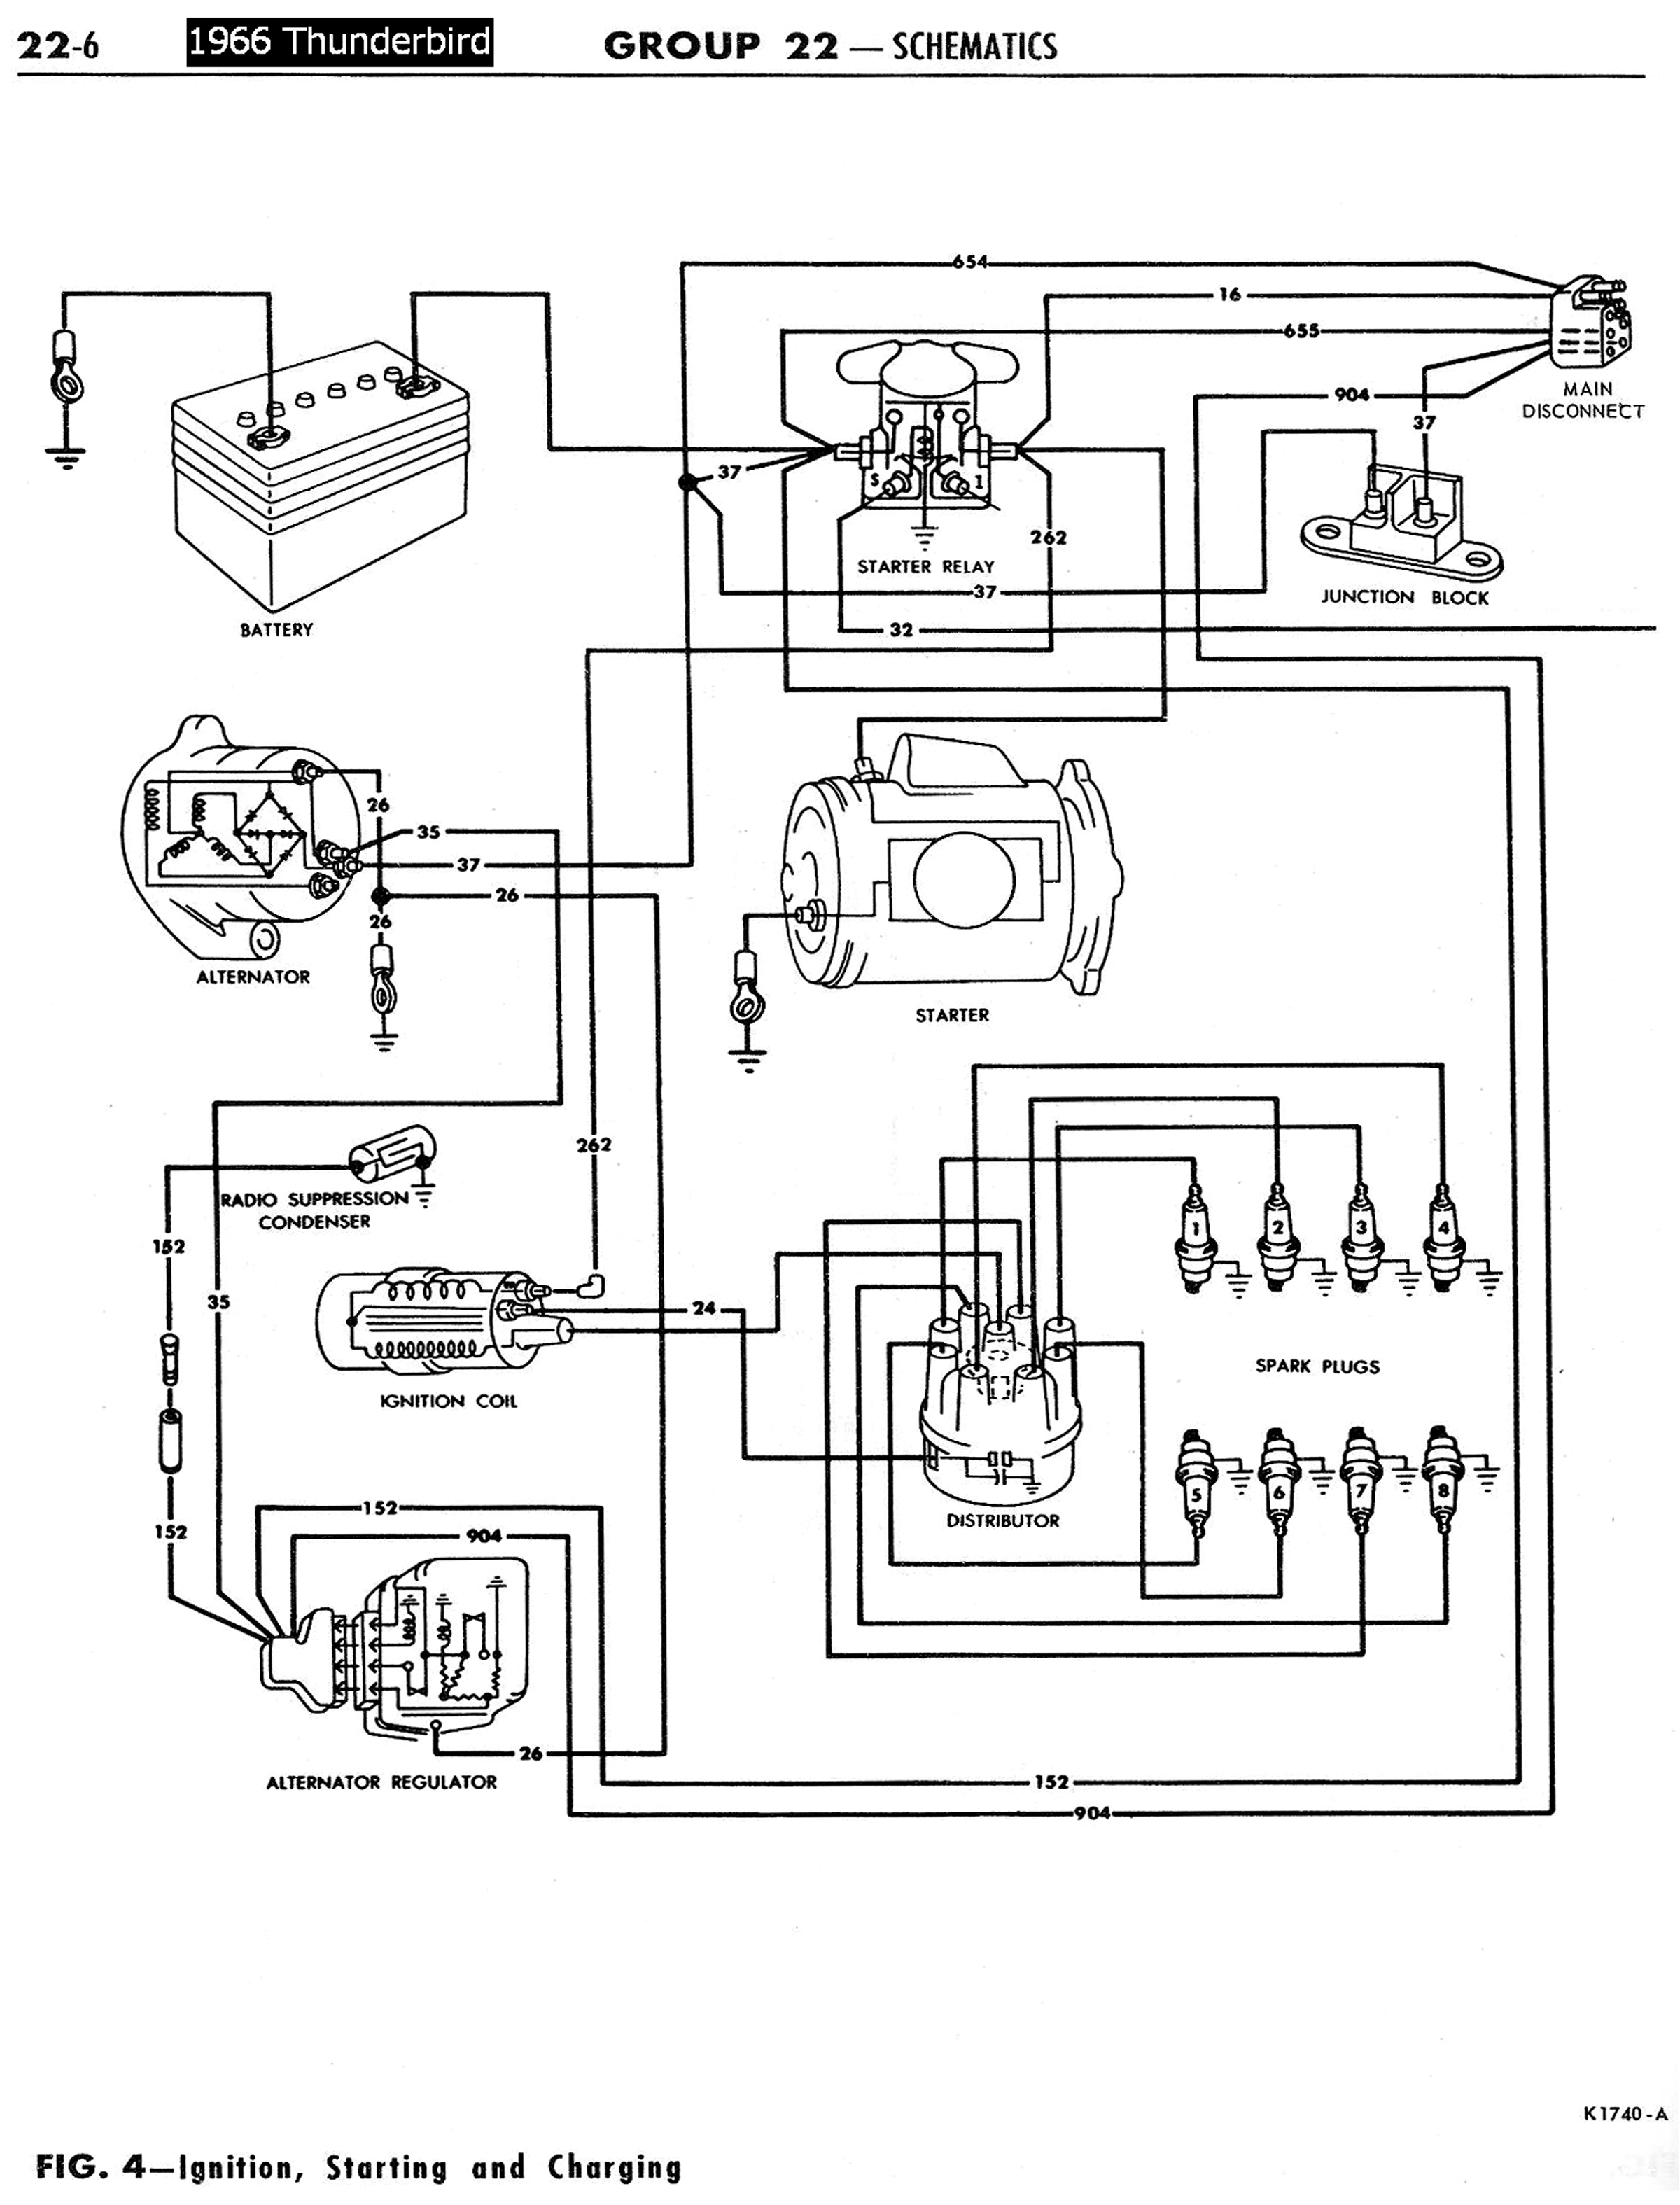 66TbirdIgnitionStartingChargingLeft 1958 68 ford electrical schematics 1965 ford thunderbird wiring harness at aneh.co